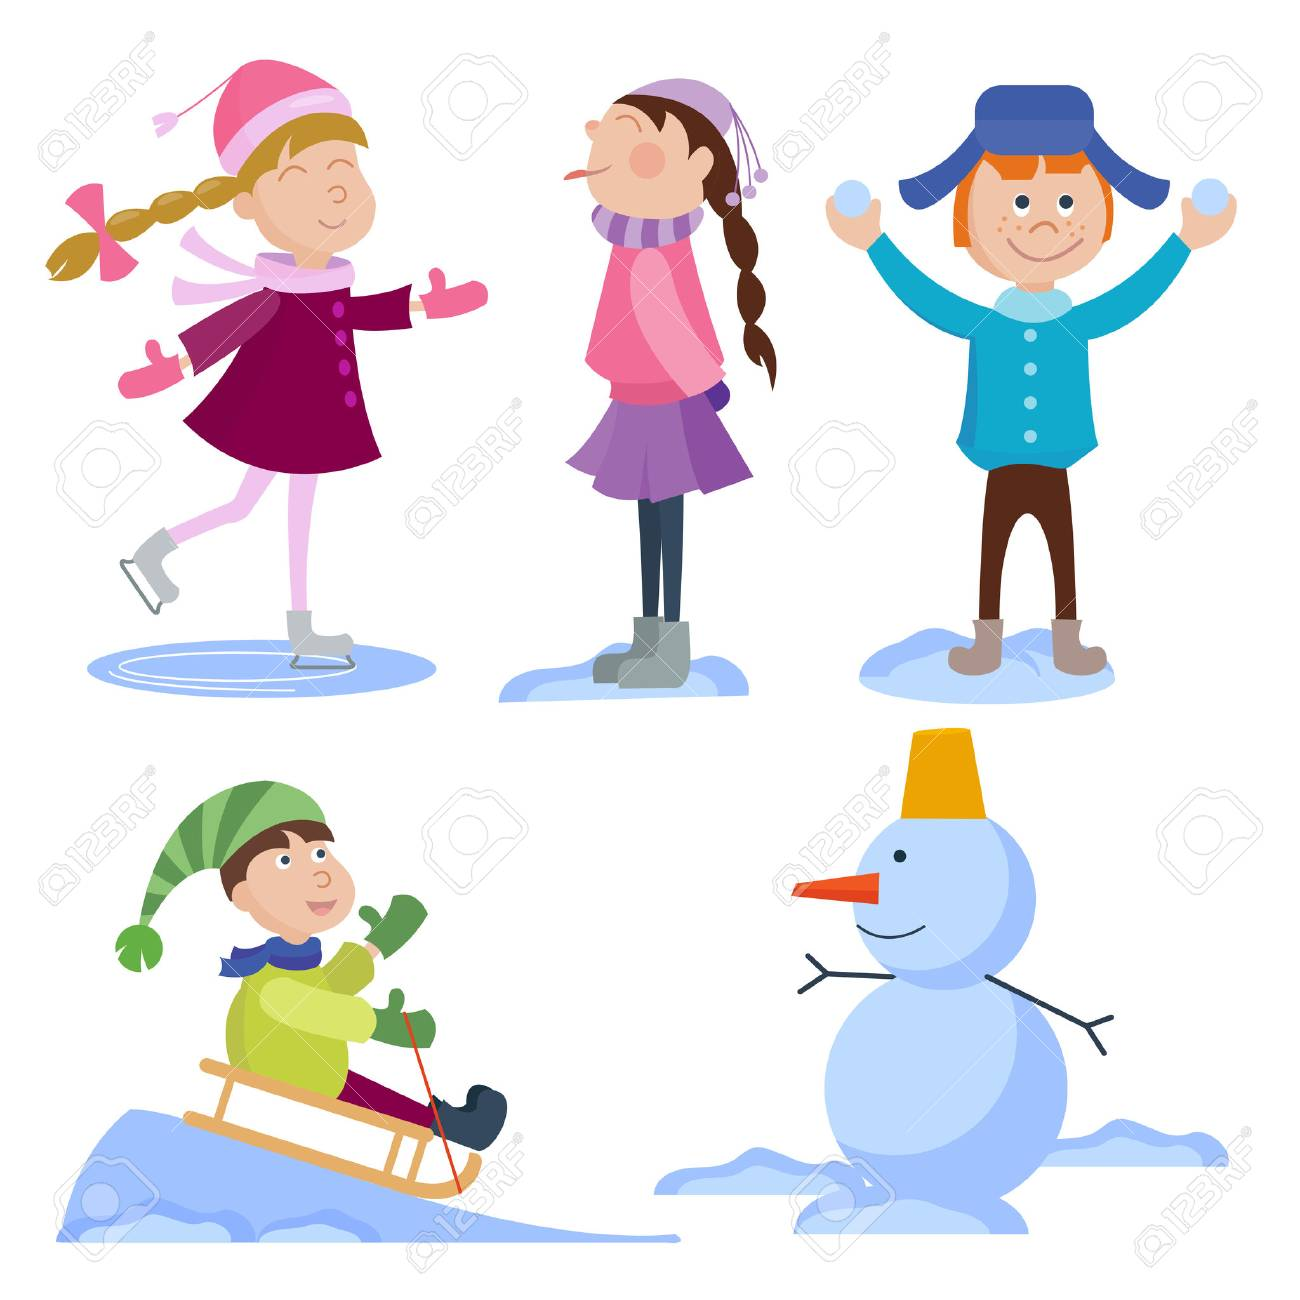 christmas kids playing winter games cartoon new year winter holiday rh 123rf com winter holiday clip art borders winter holiday clip art pictures